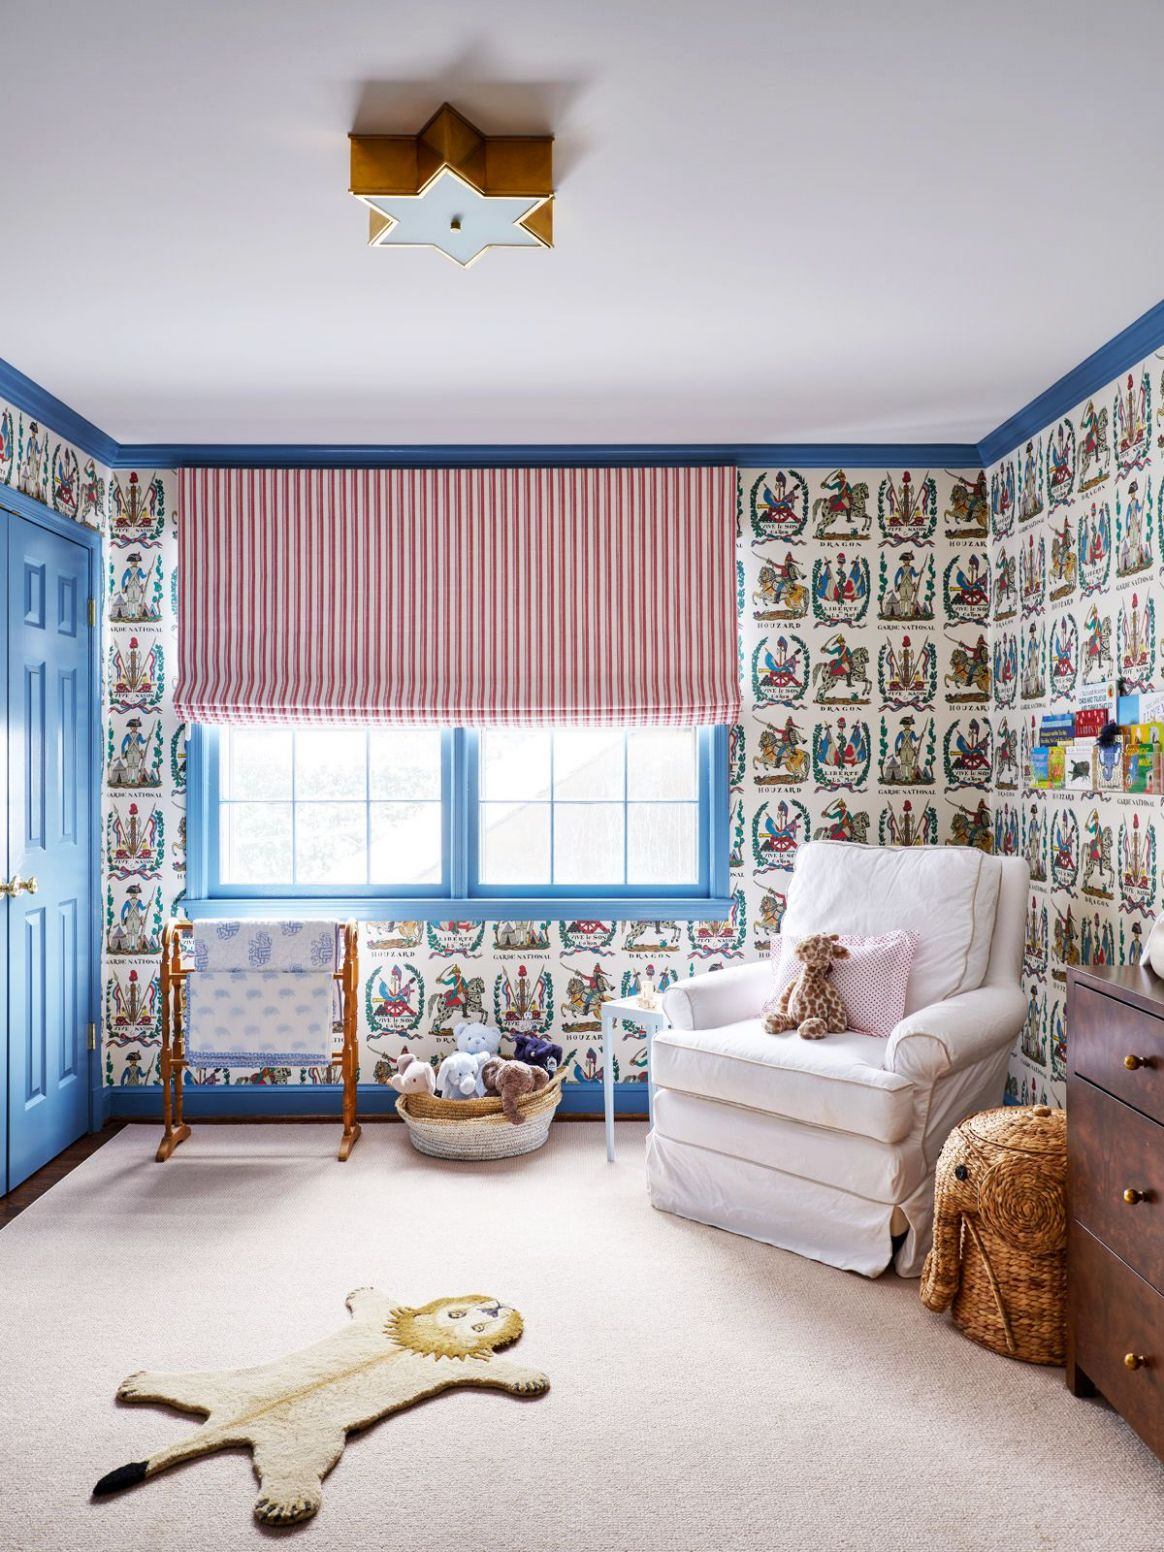 9 Cute Nursery Decorating Ideas - Baby Room Designs for Chic Parents - baby room furniture ideas